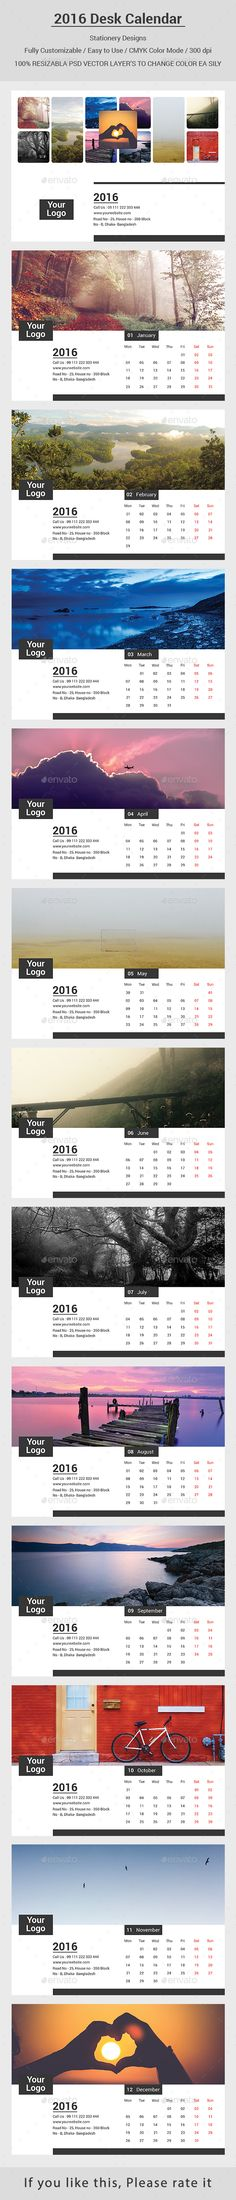 2016 Desk Calendar Design                                                                                                                                                     More